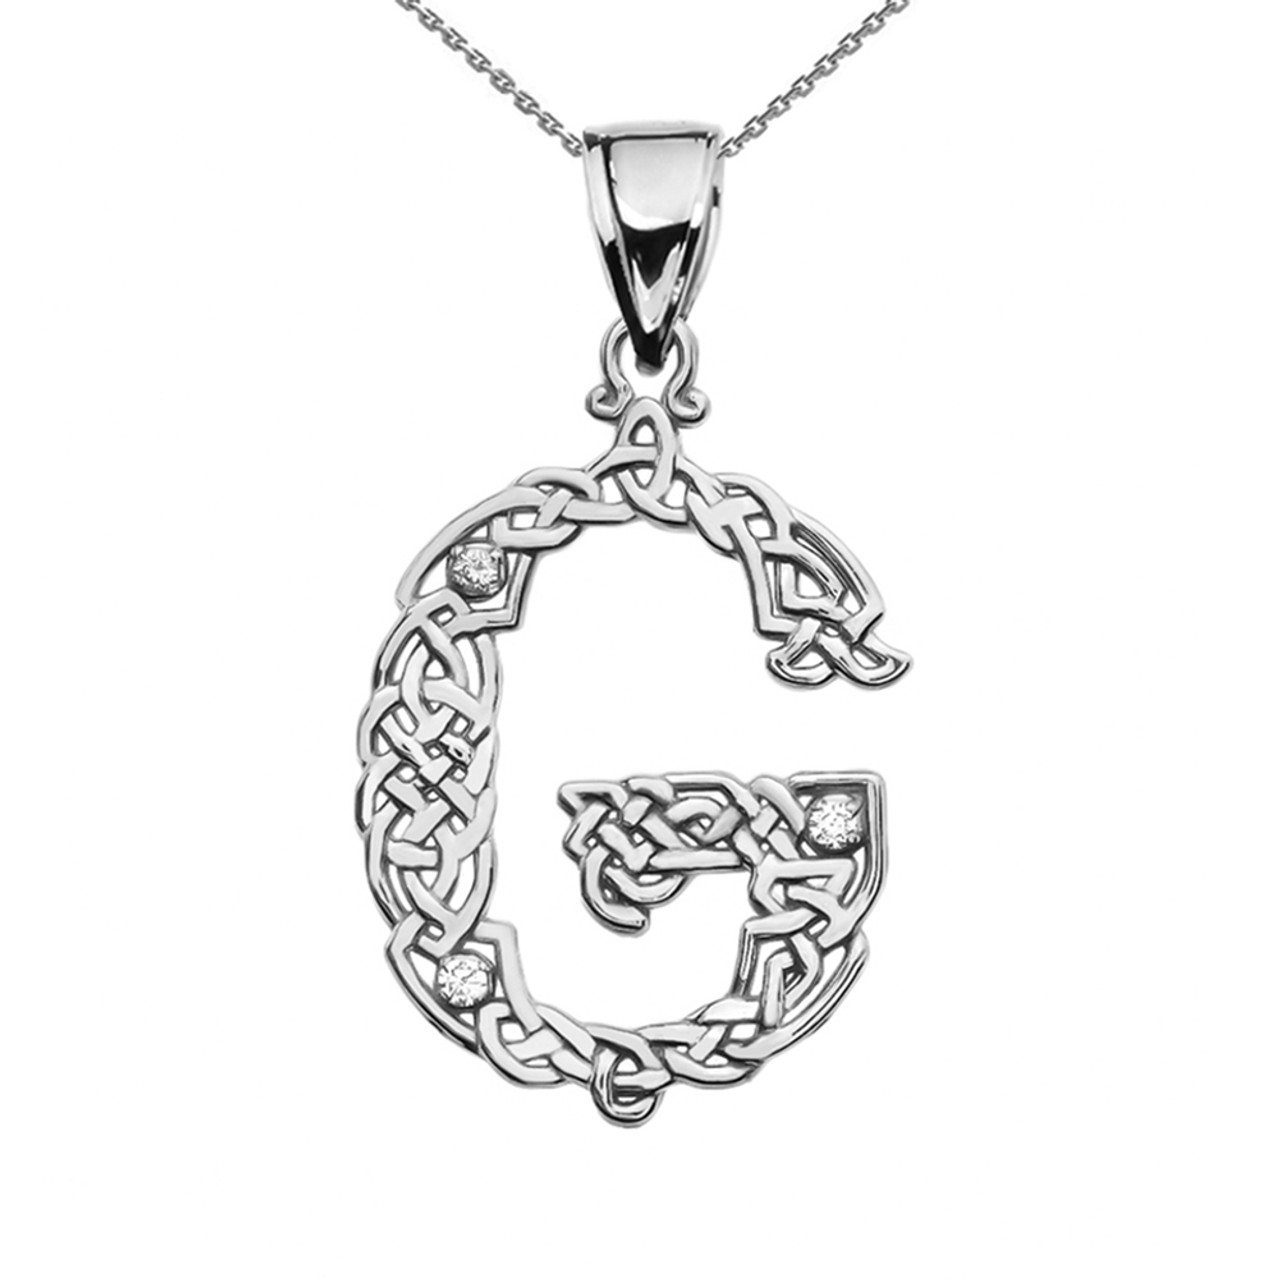 Cz g initial in celtic pattern sterling silver pendant necklace g initial in celtic knot pattern sterling silver pendant necklace with cz aloadofball Image collections